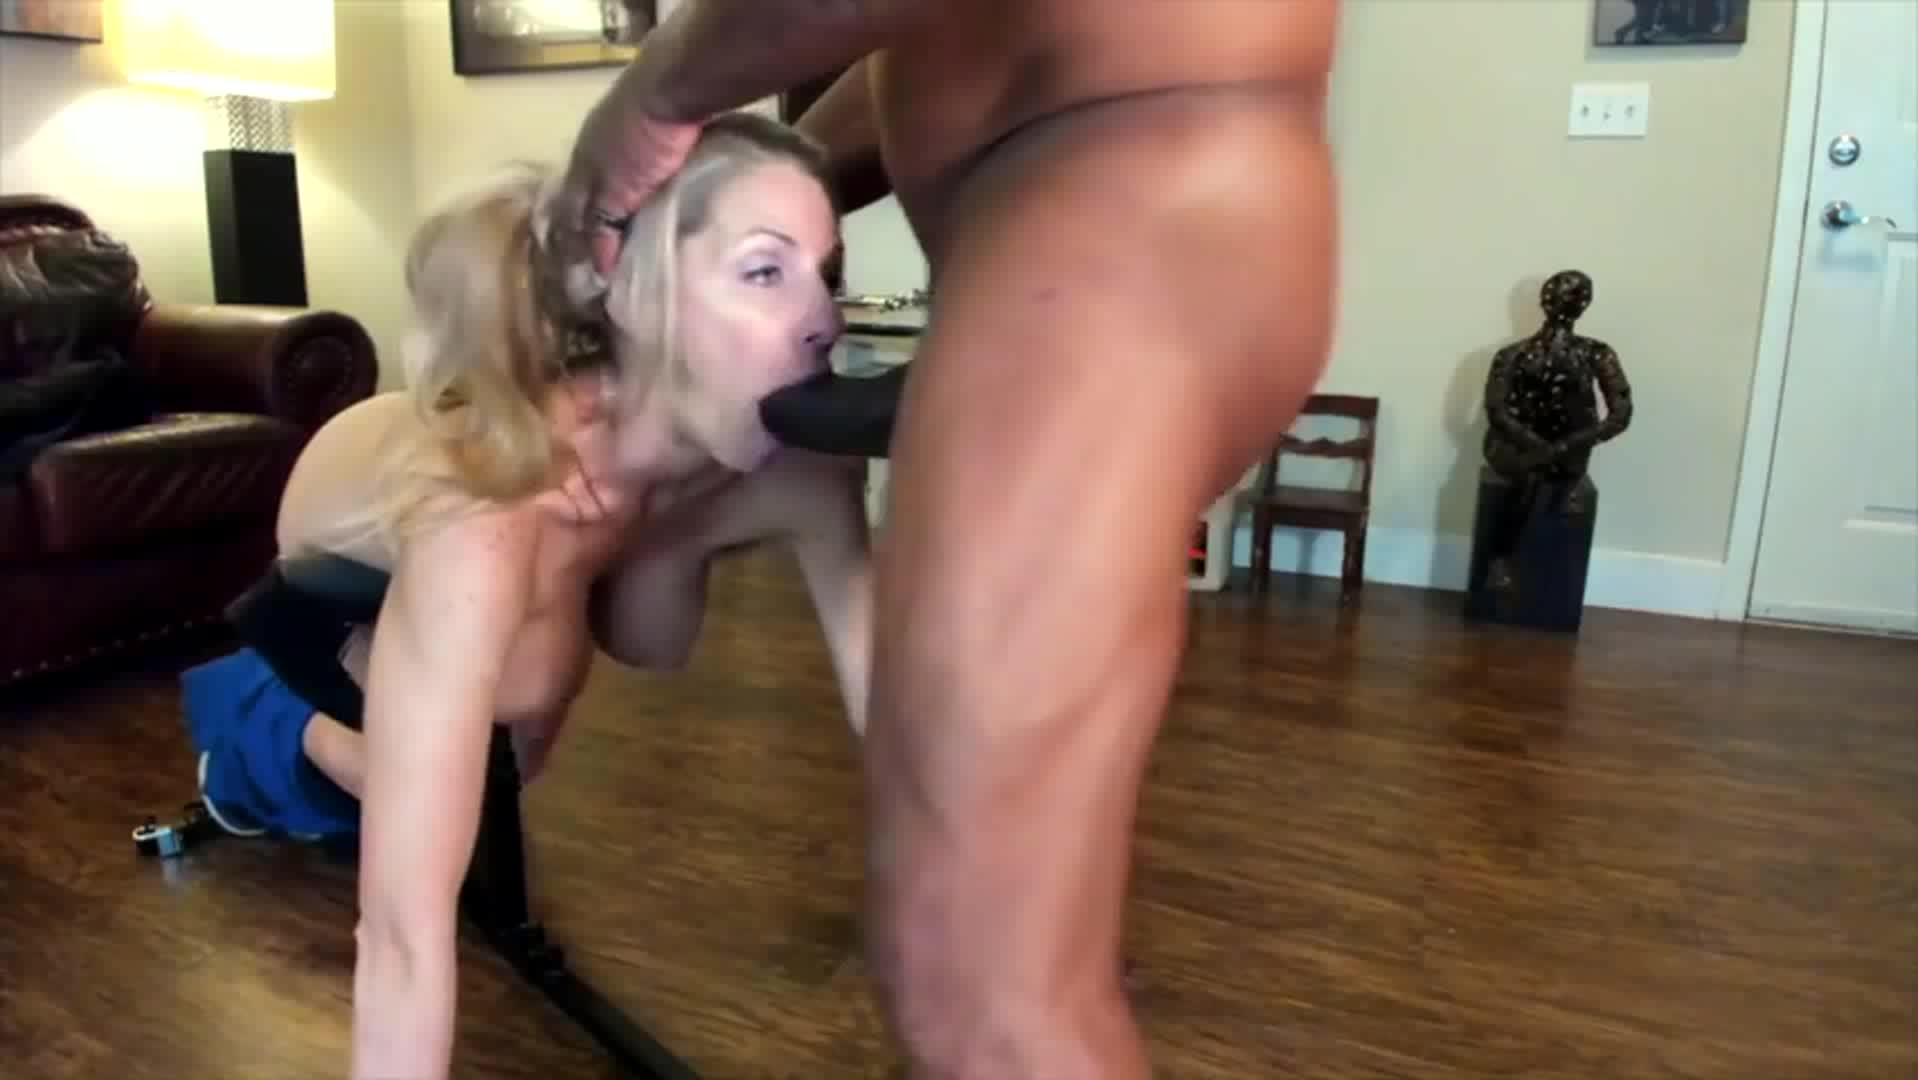 I love it when your Mom chokes on my big black cock